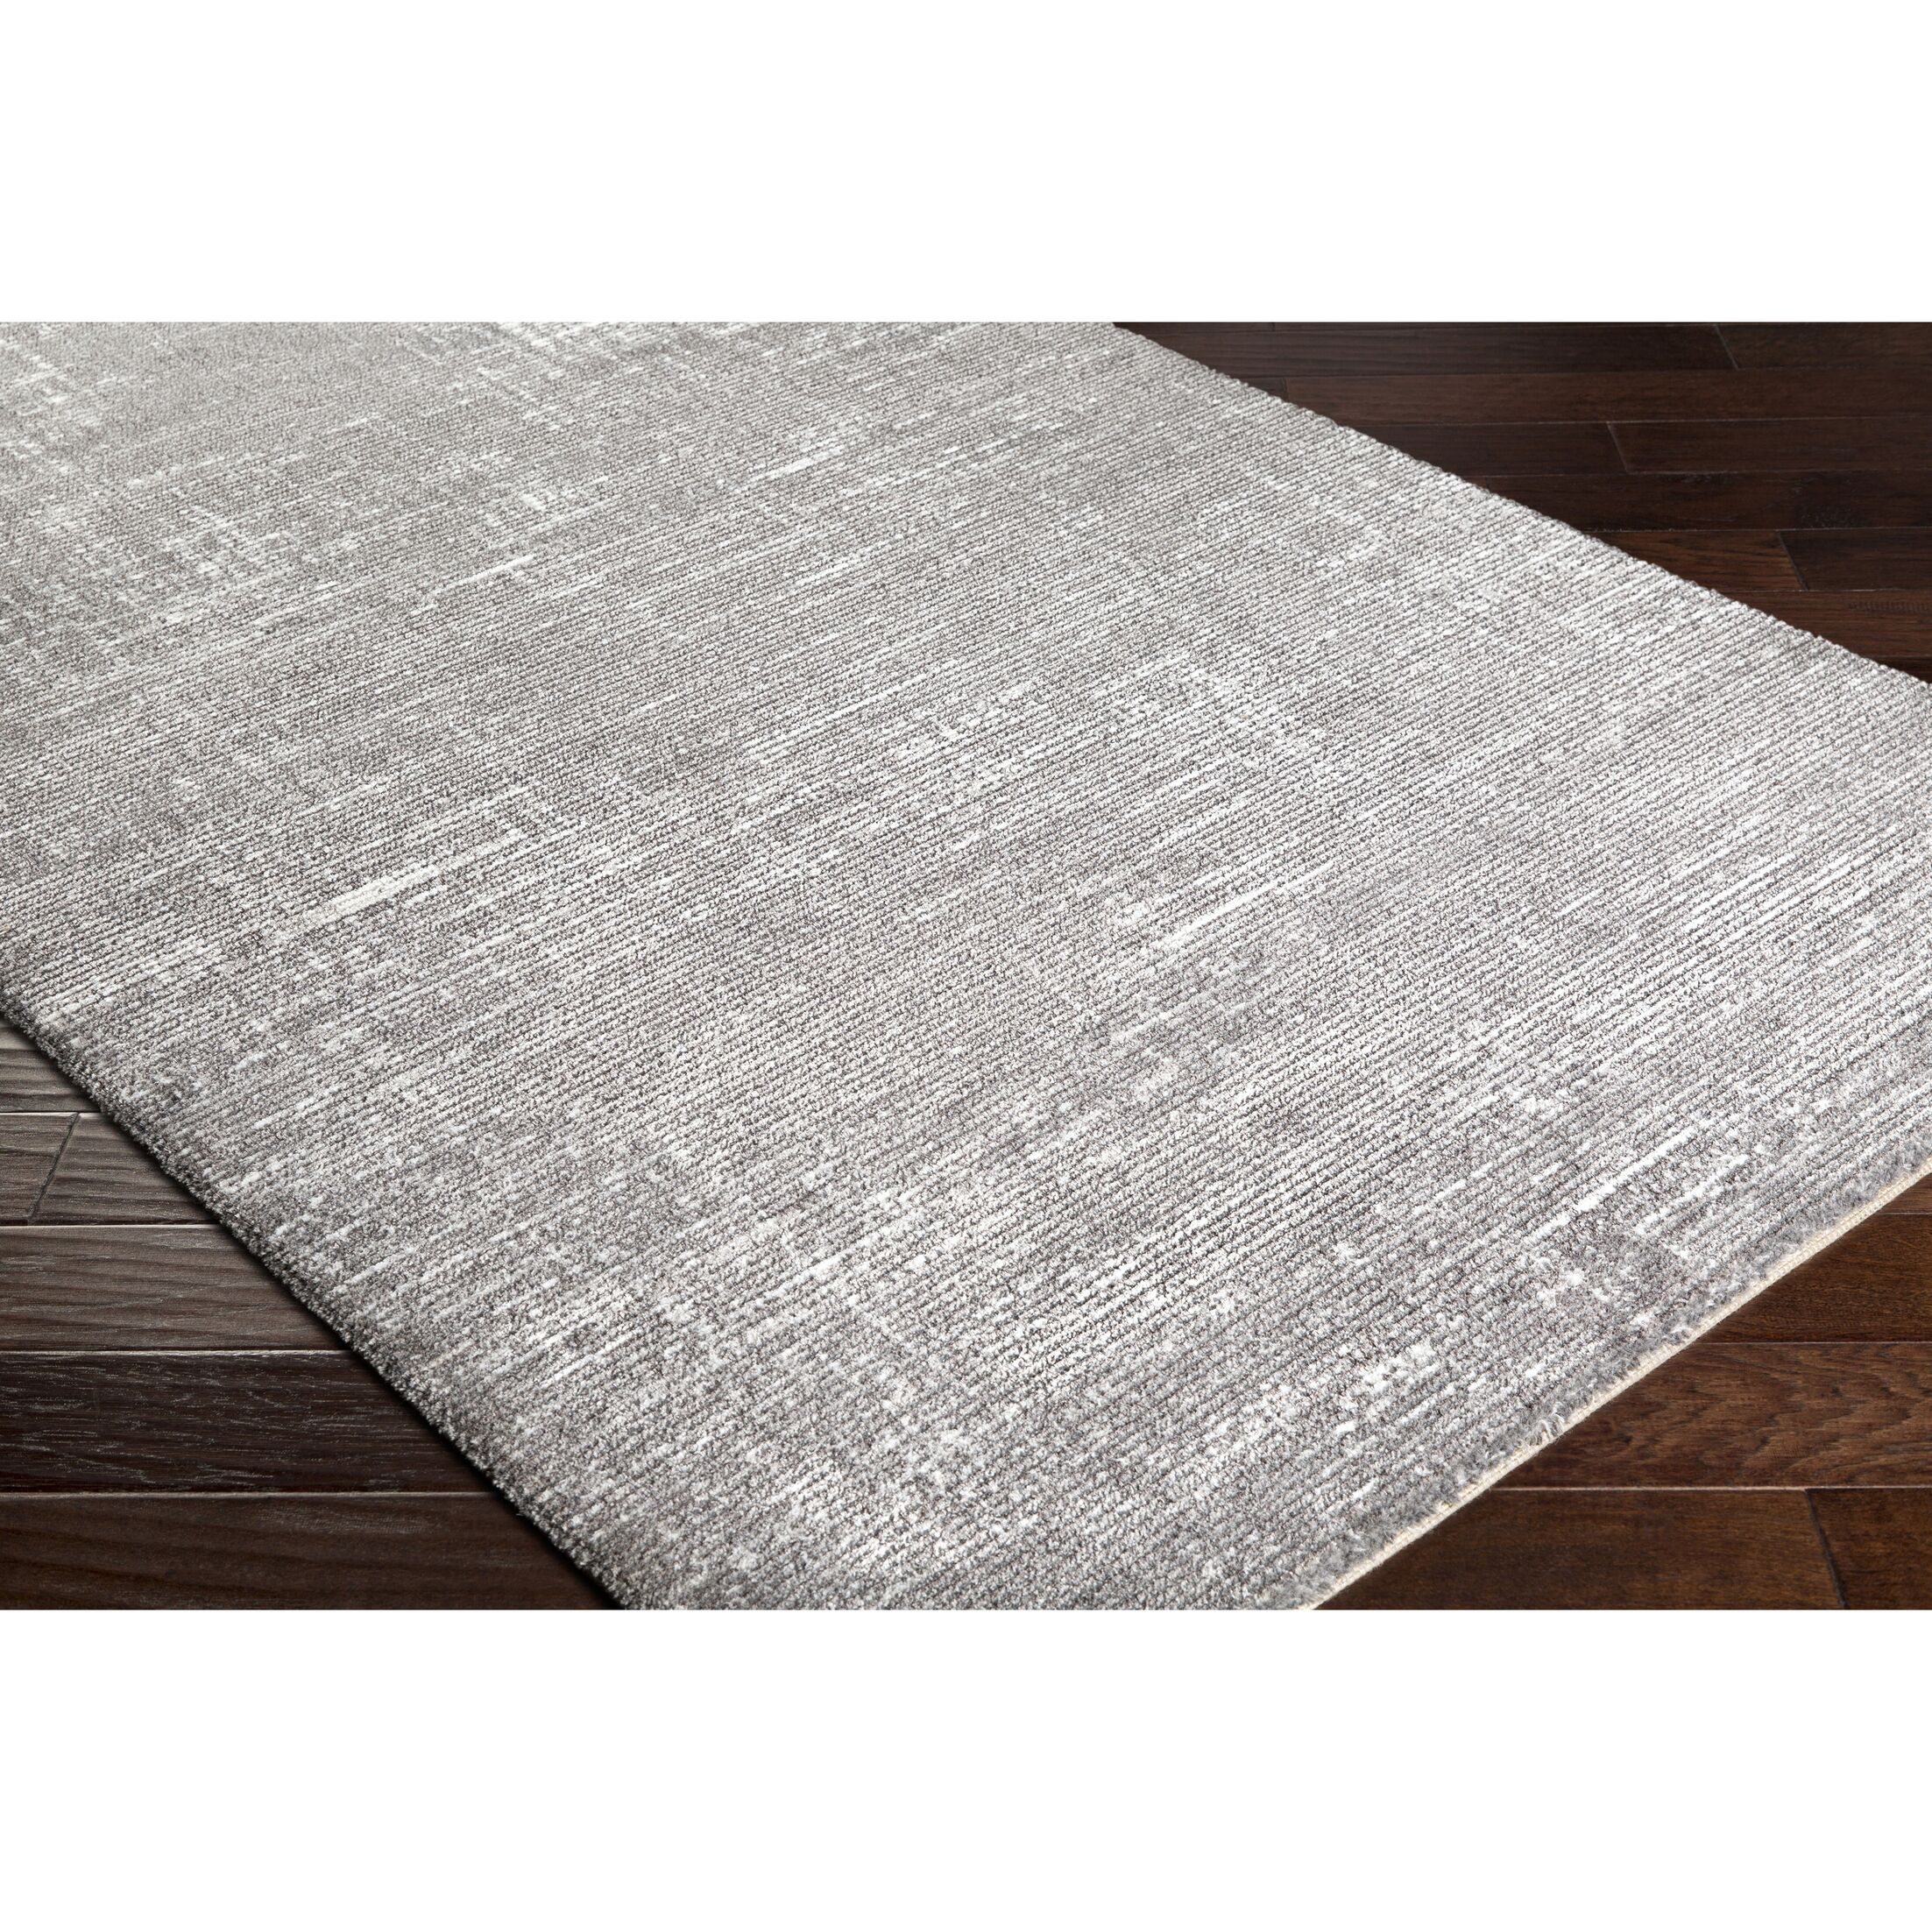 Sky Gray/Neutral Area Rug Rug Size: Rectangle 9' x 12'